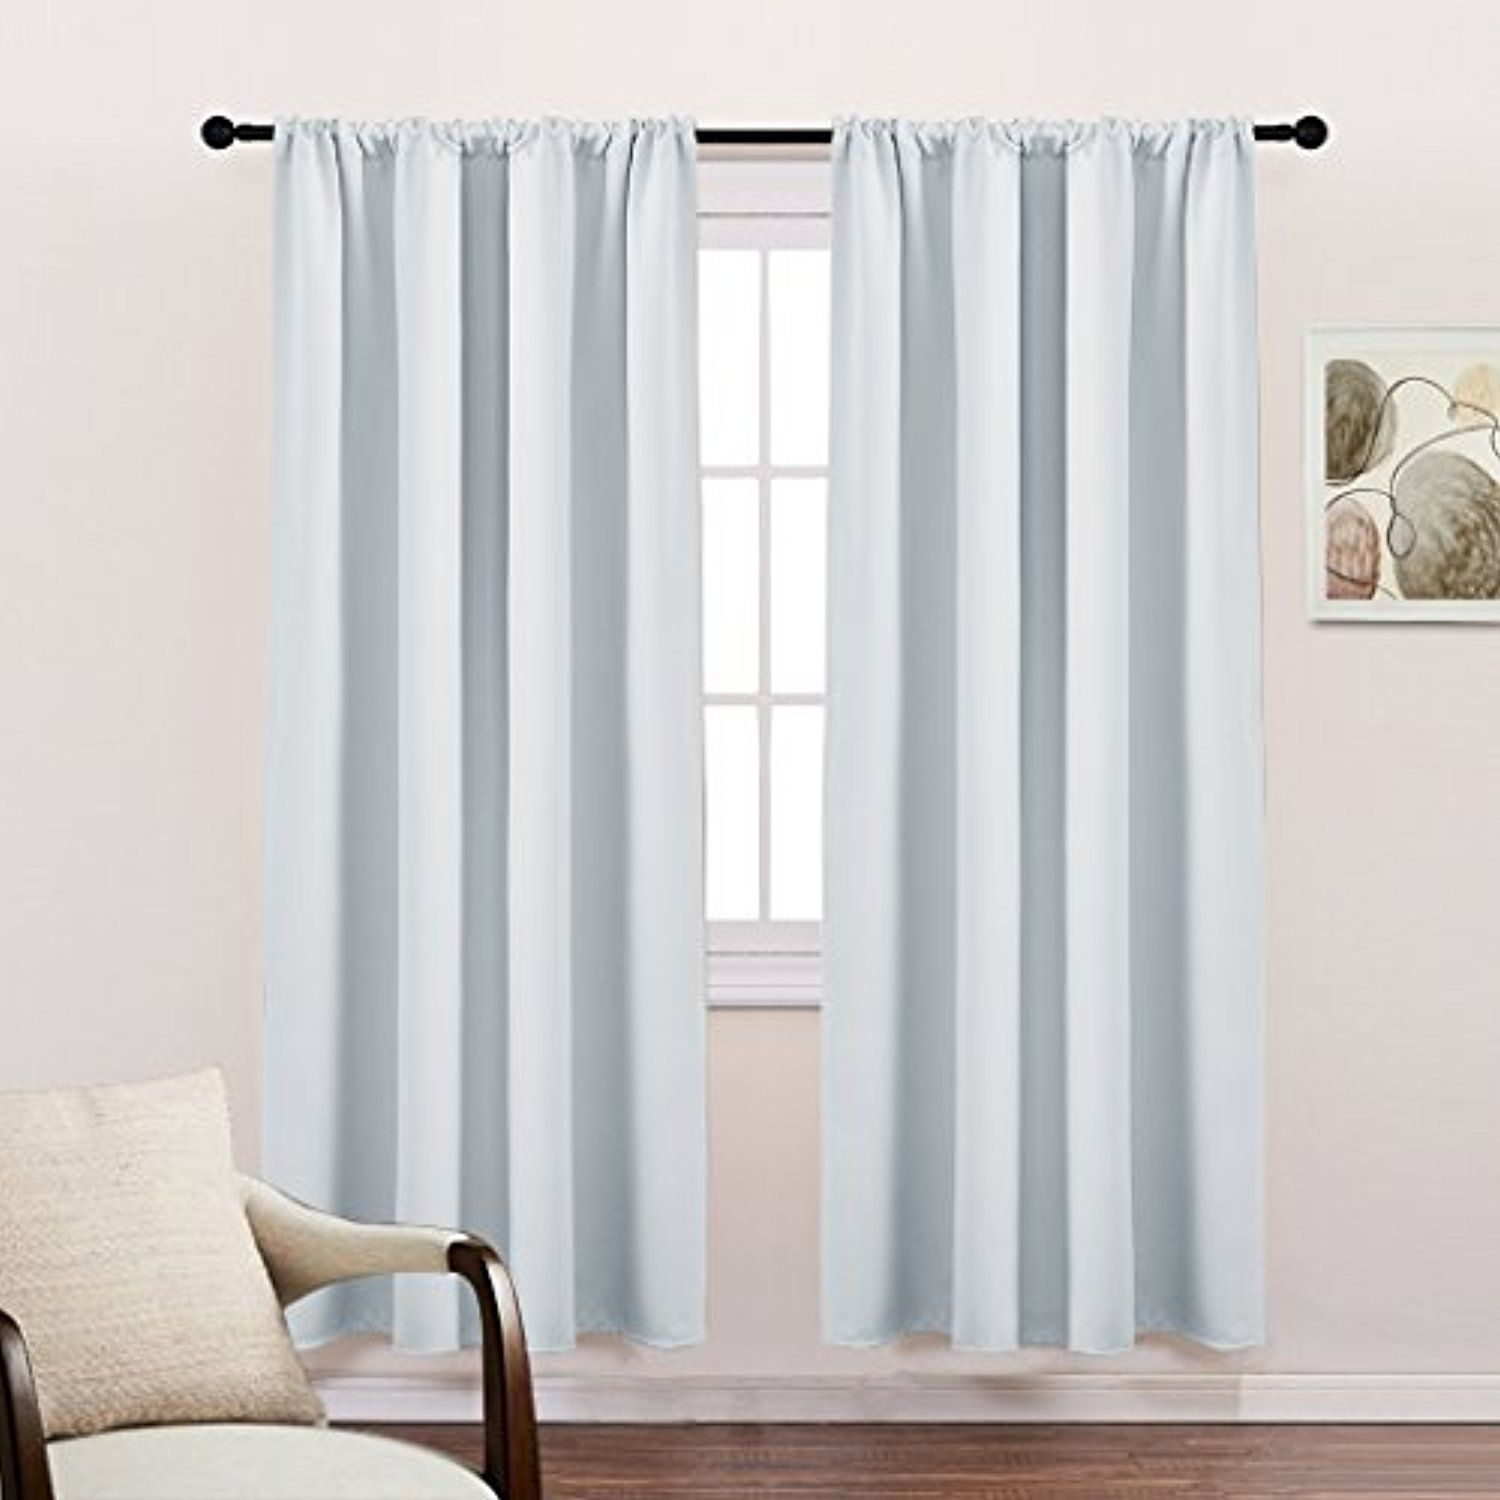 Bedroom Home Decor White Curtains - Rod Pocket Top Solid Soft ...